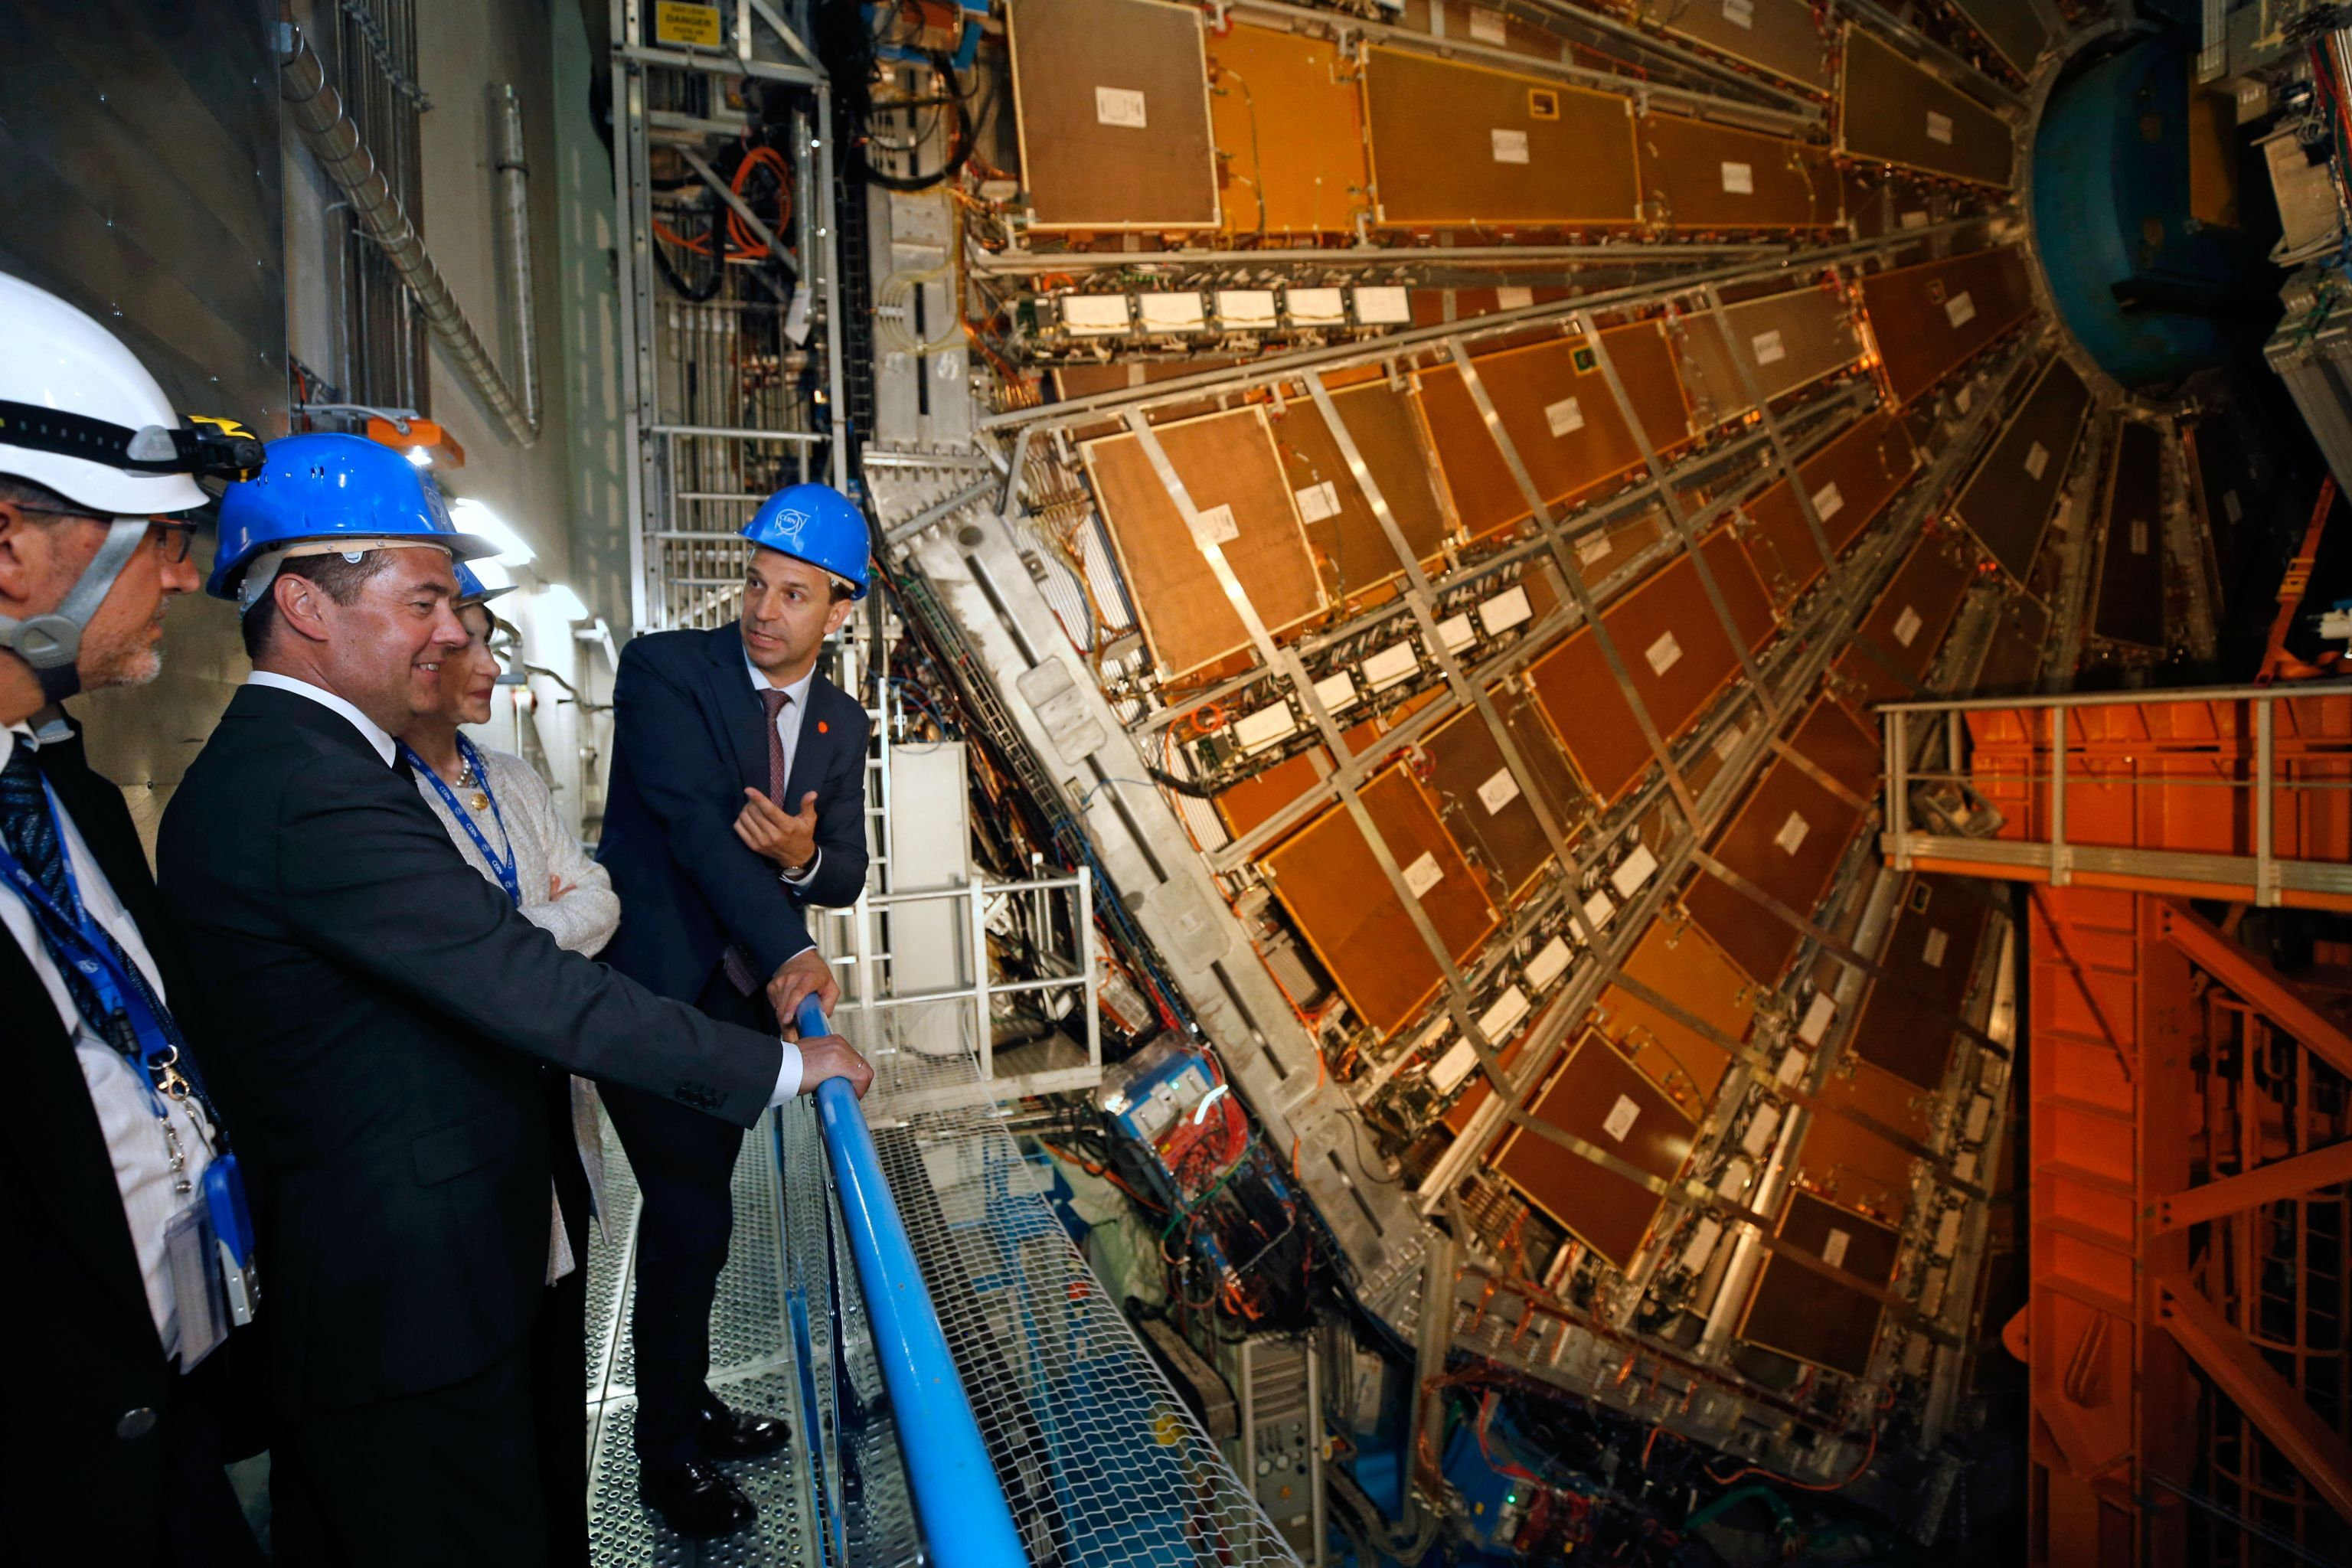 Russian Prime Minister Dmitri Medvedev watches the ATLAS particle detector, constructed at the Large Hadron Collider, as he tours CERN in Geneva, Switzerland. First Deputy Minister of Science and Higher Education Grigory Trubnikov, right.